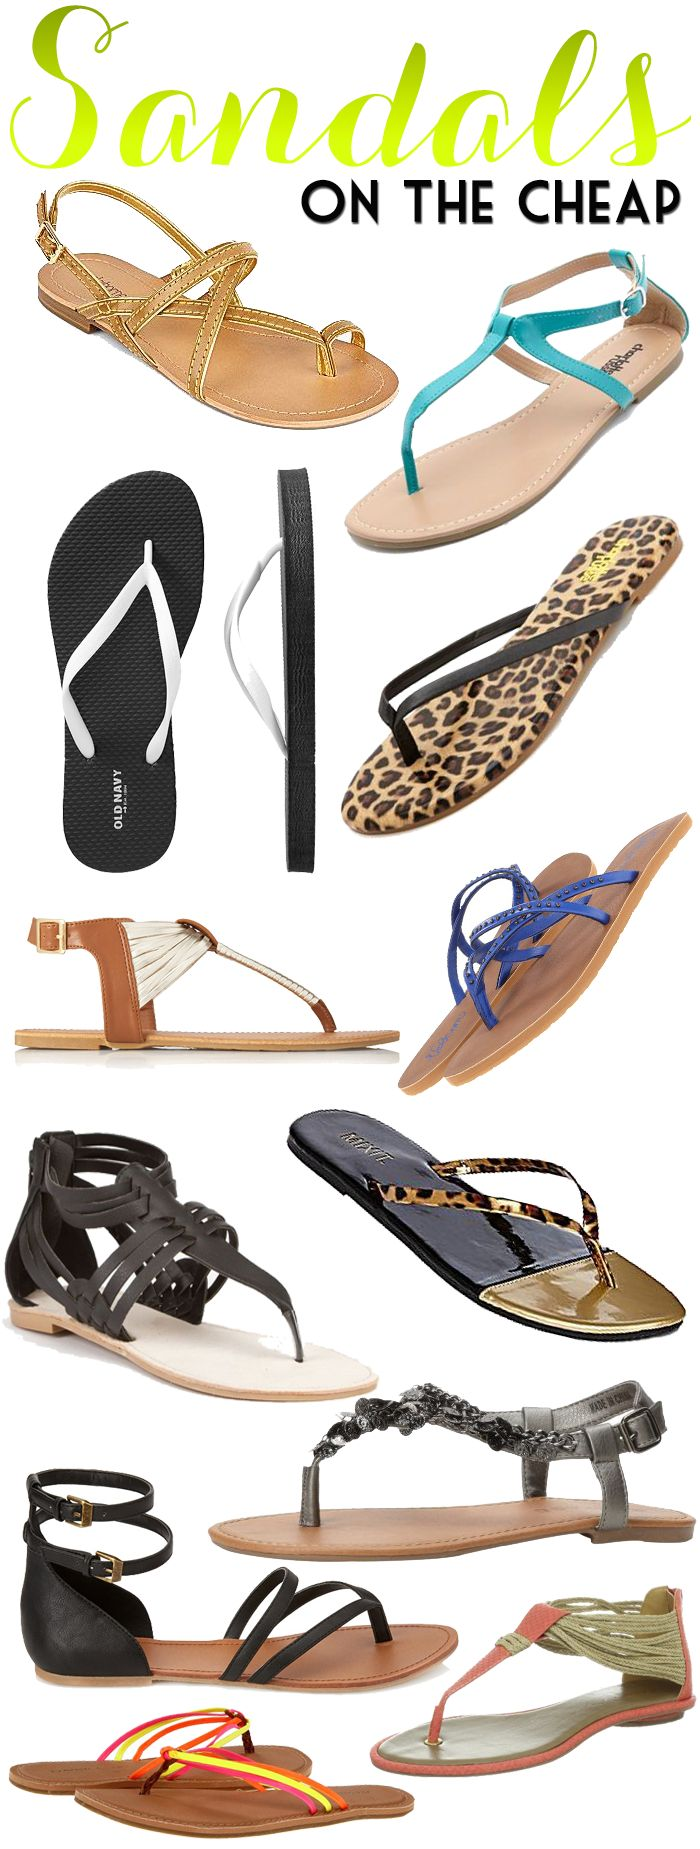 Cheap Sandals for Summer! #budgetfashion #cheapfashion #sandals